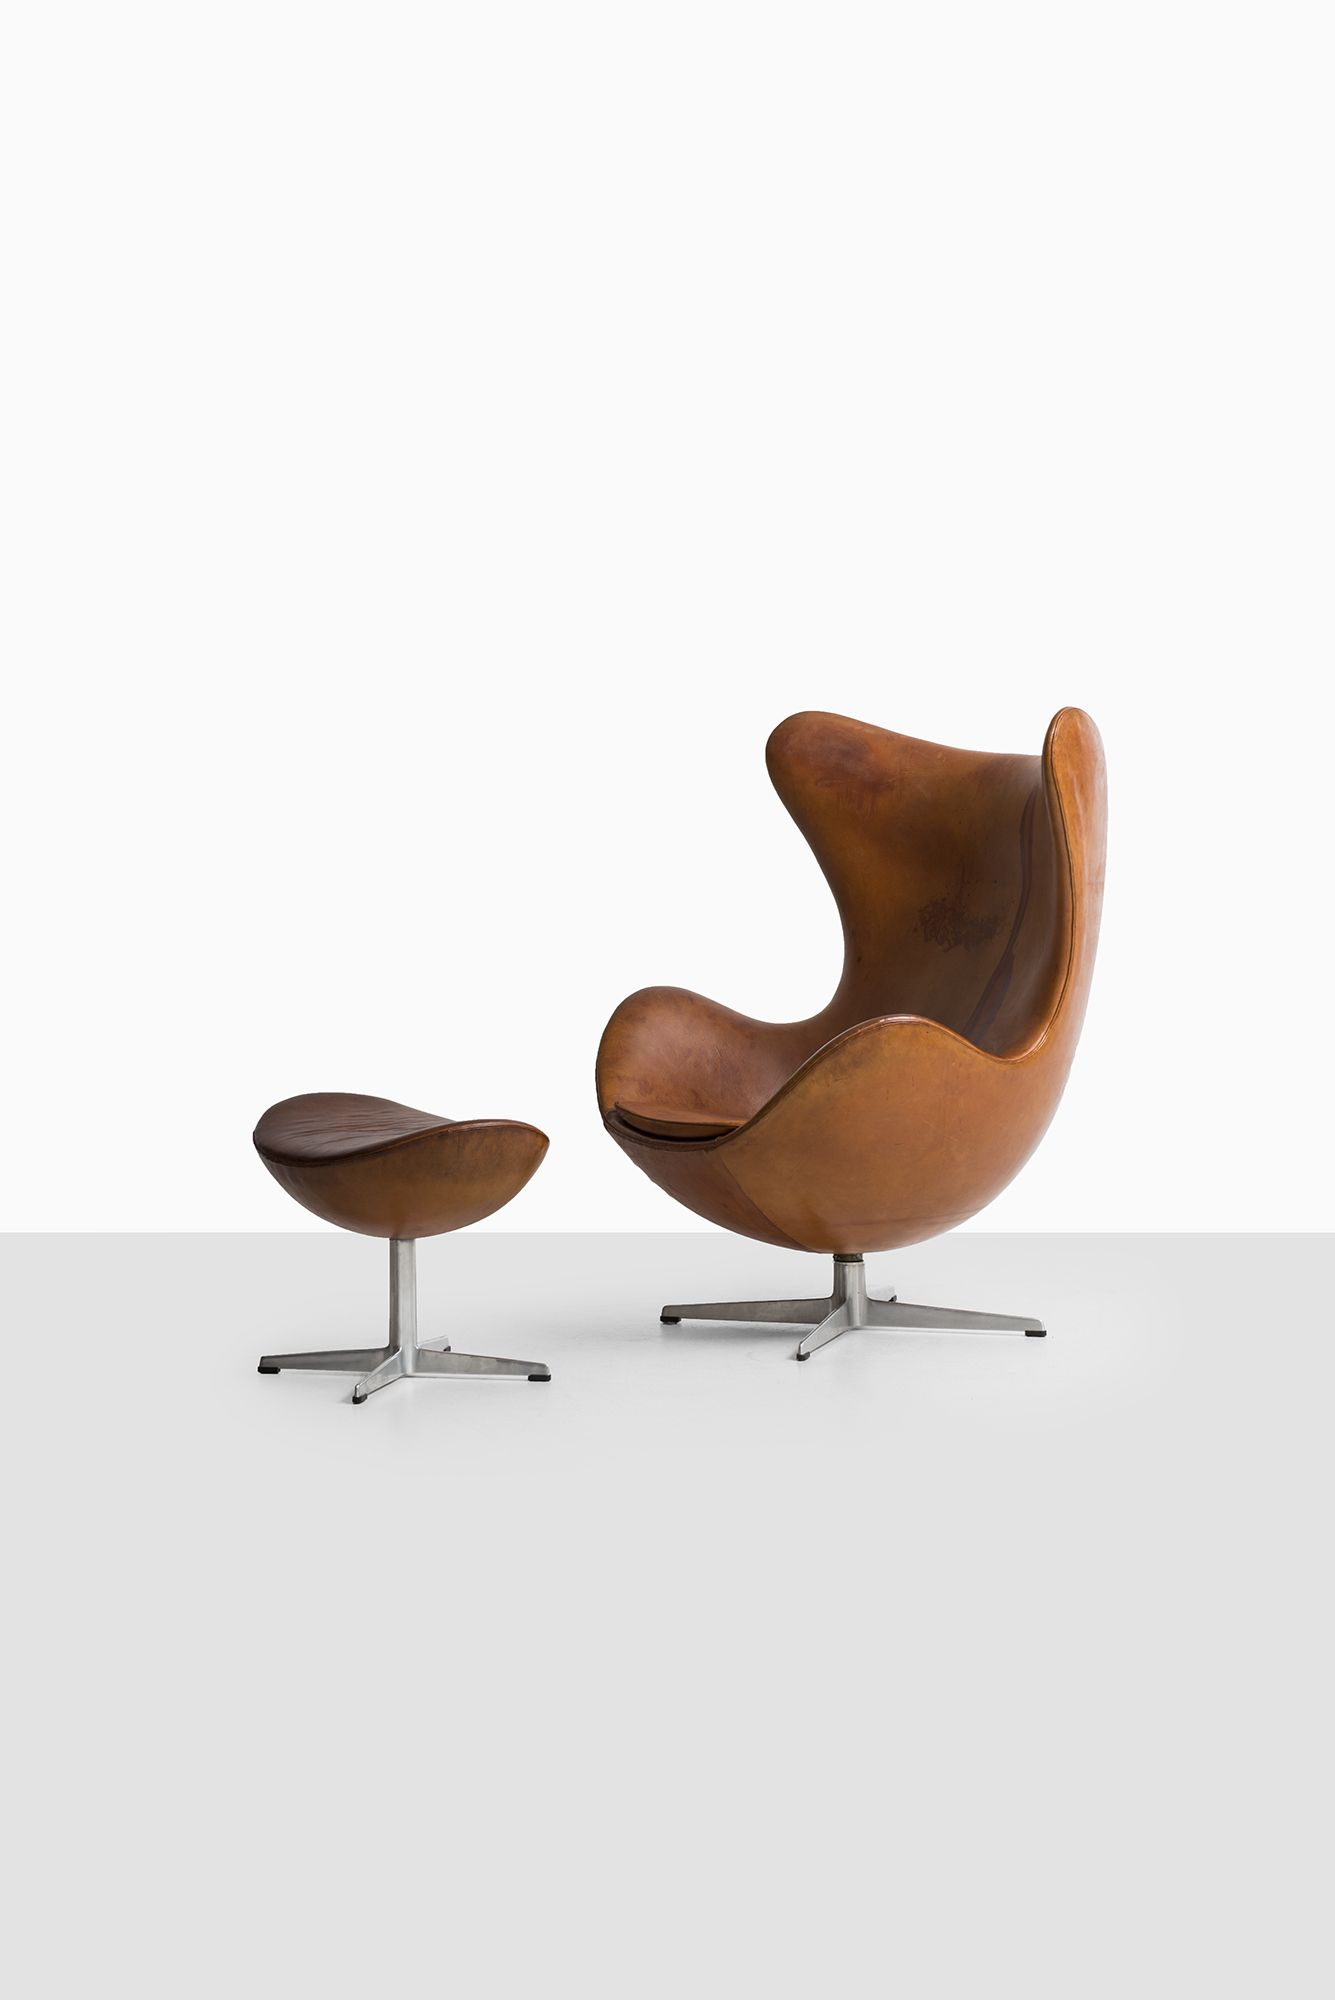 Prominent Stoelen Outlet.Sold Chair Design Egg Chair Chair